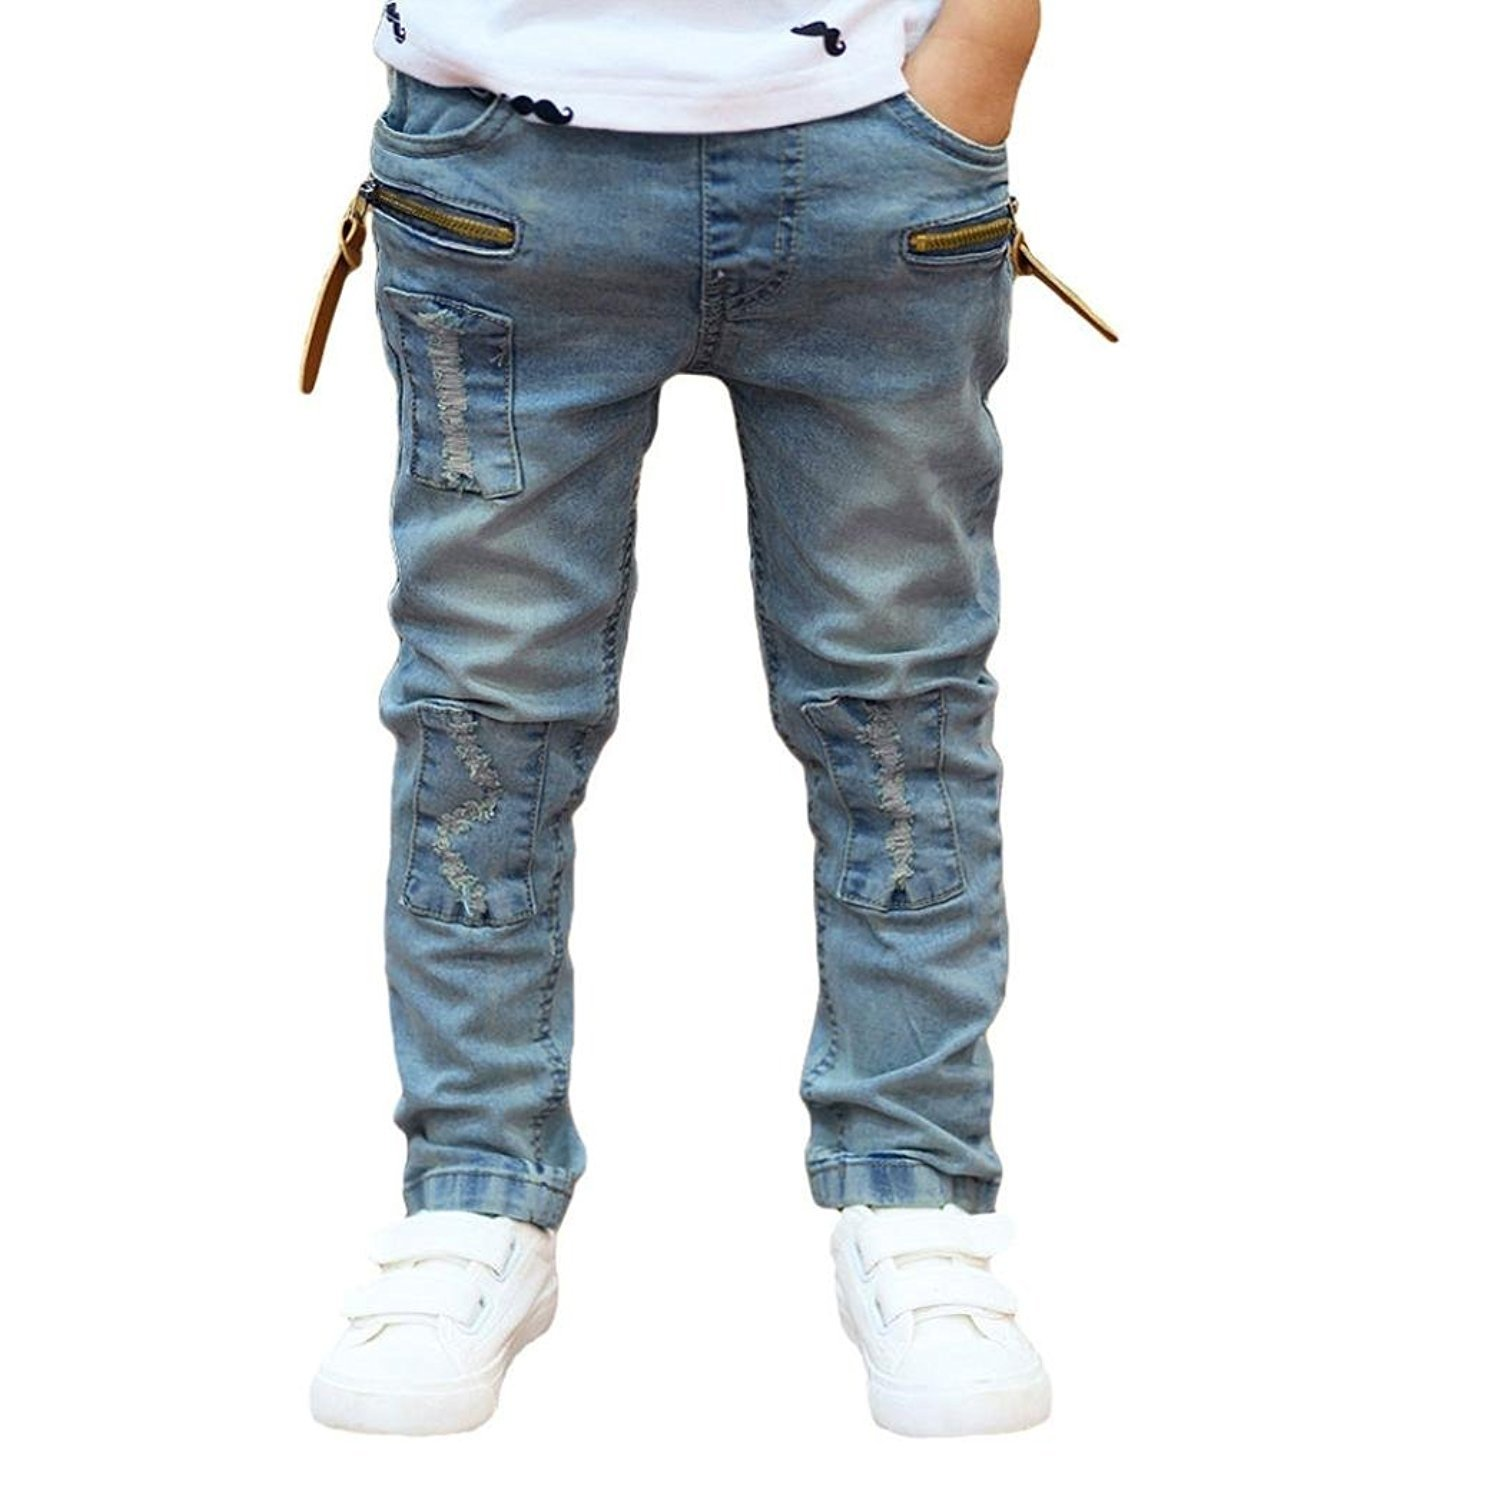 Clode® for 3-11 Years Boys, The Boy Zipper Stretch Slim Pale Denim Trousers Pants Clode-Boys Clothing -T02